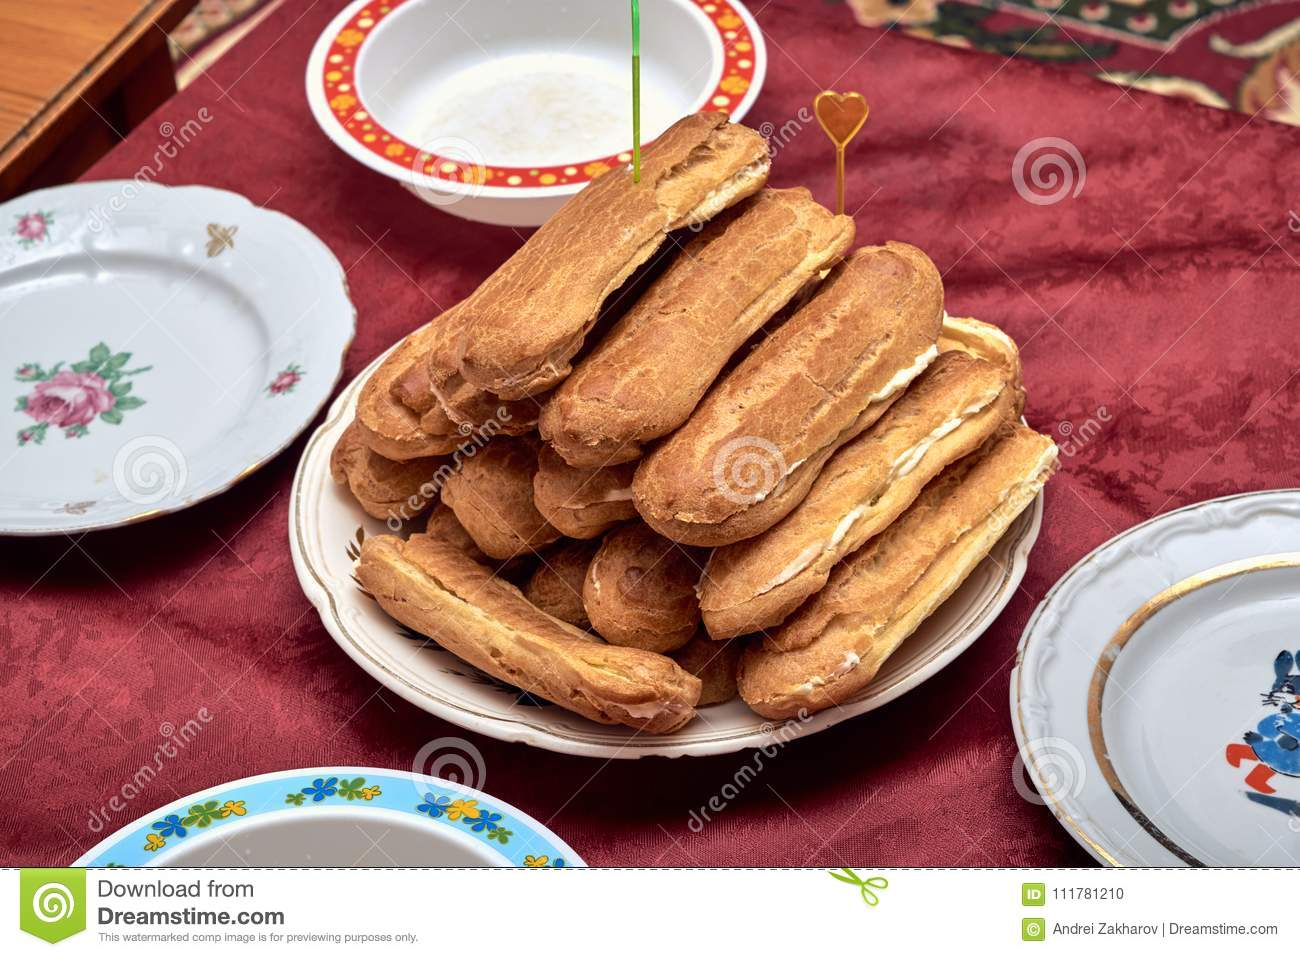 On the plate there are several home-made eclairs.